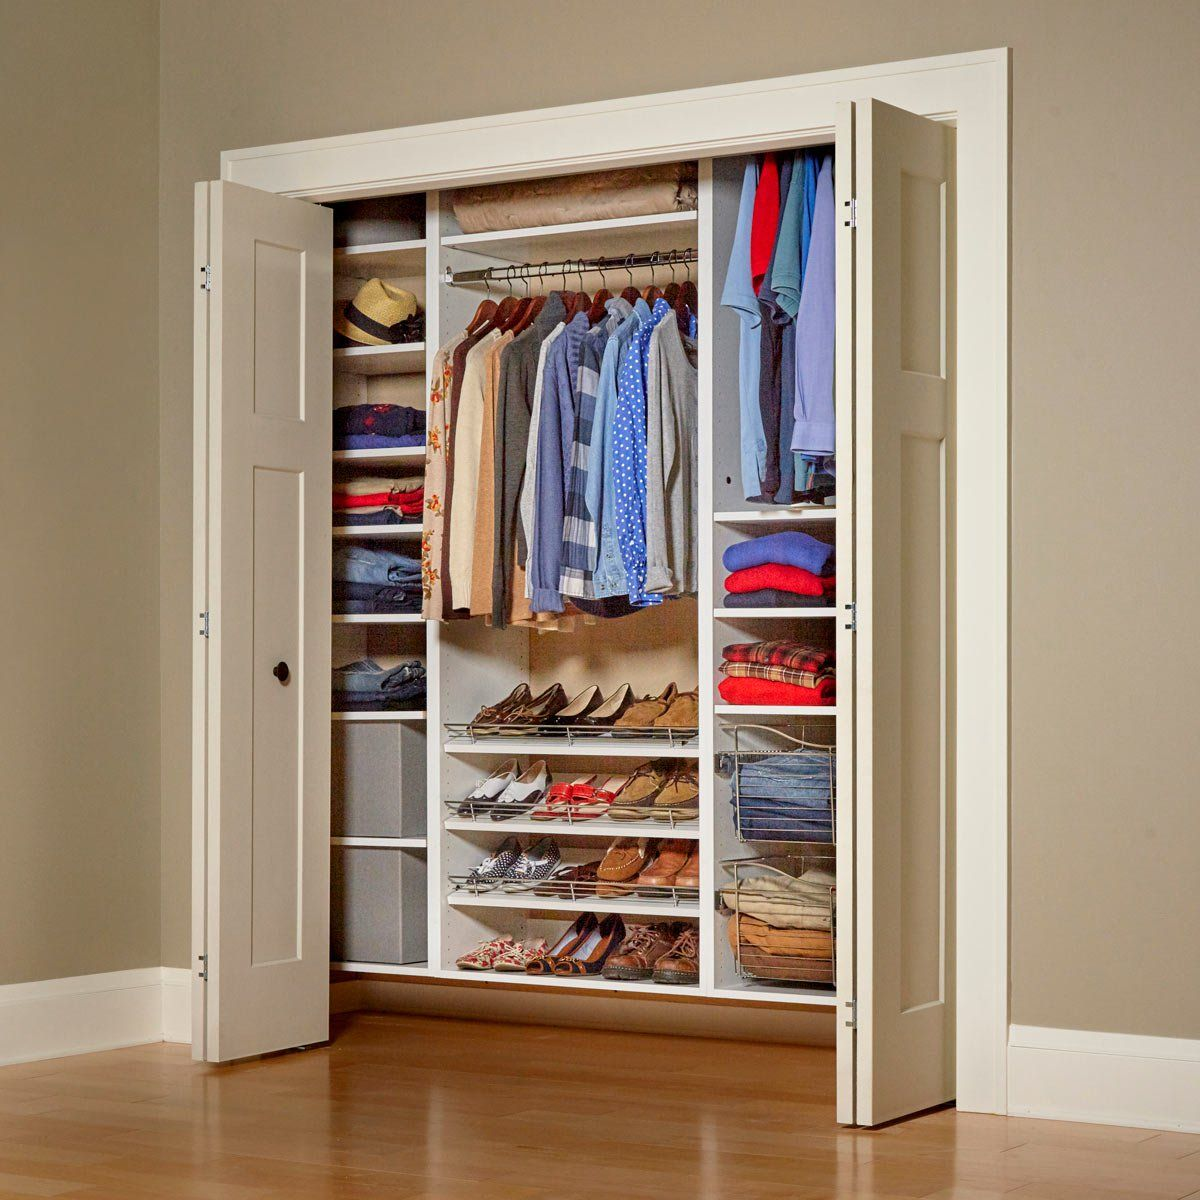 Build Your Own Melamine Closet Organizer Diy Closet Shelves Closet Built Ins Closet Organization Diy